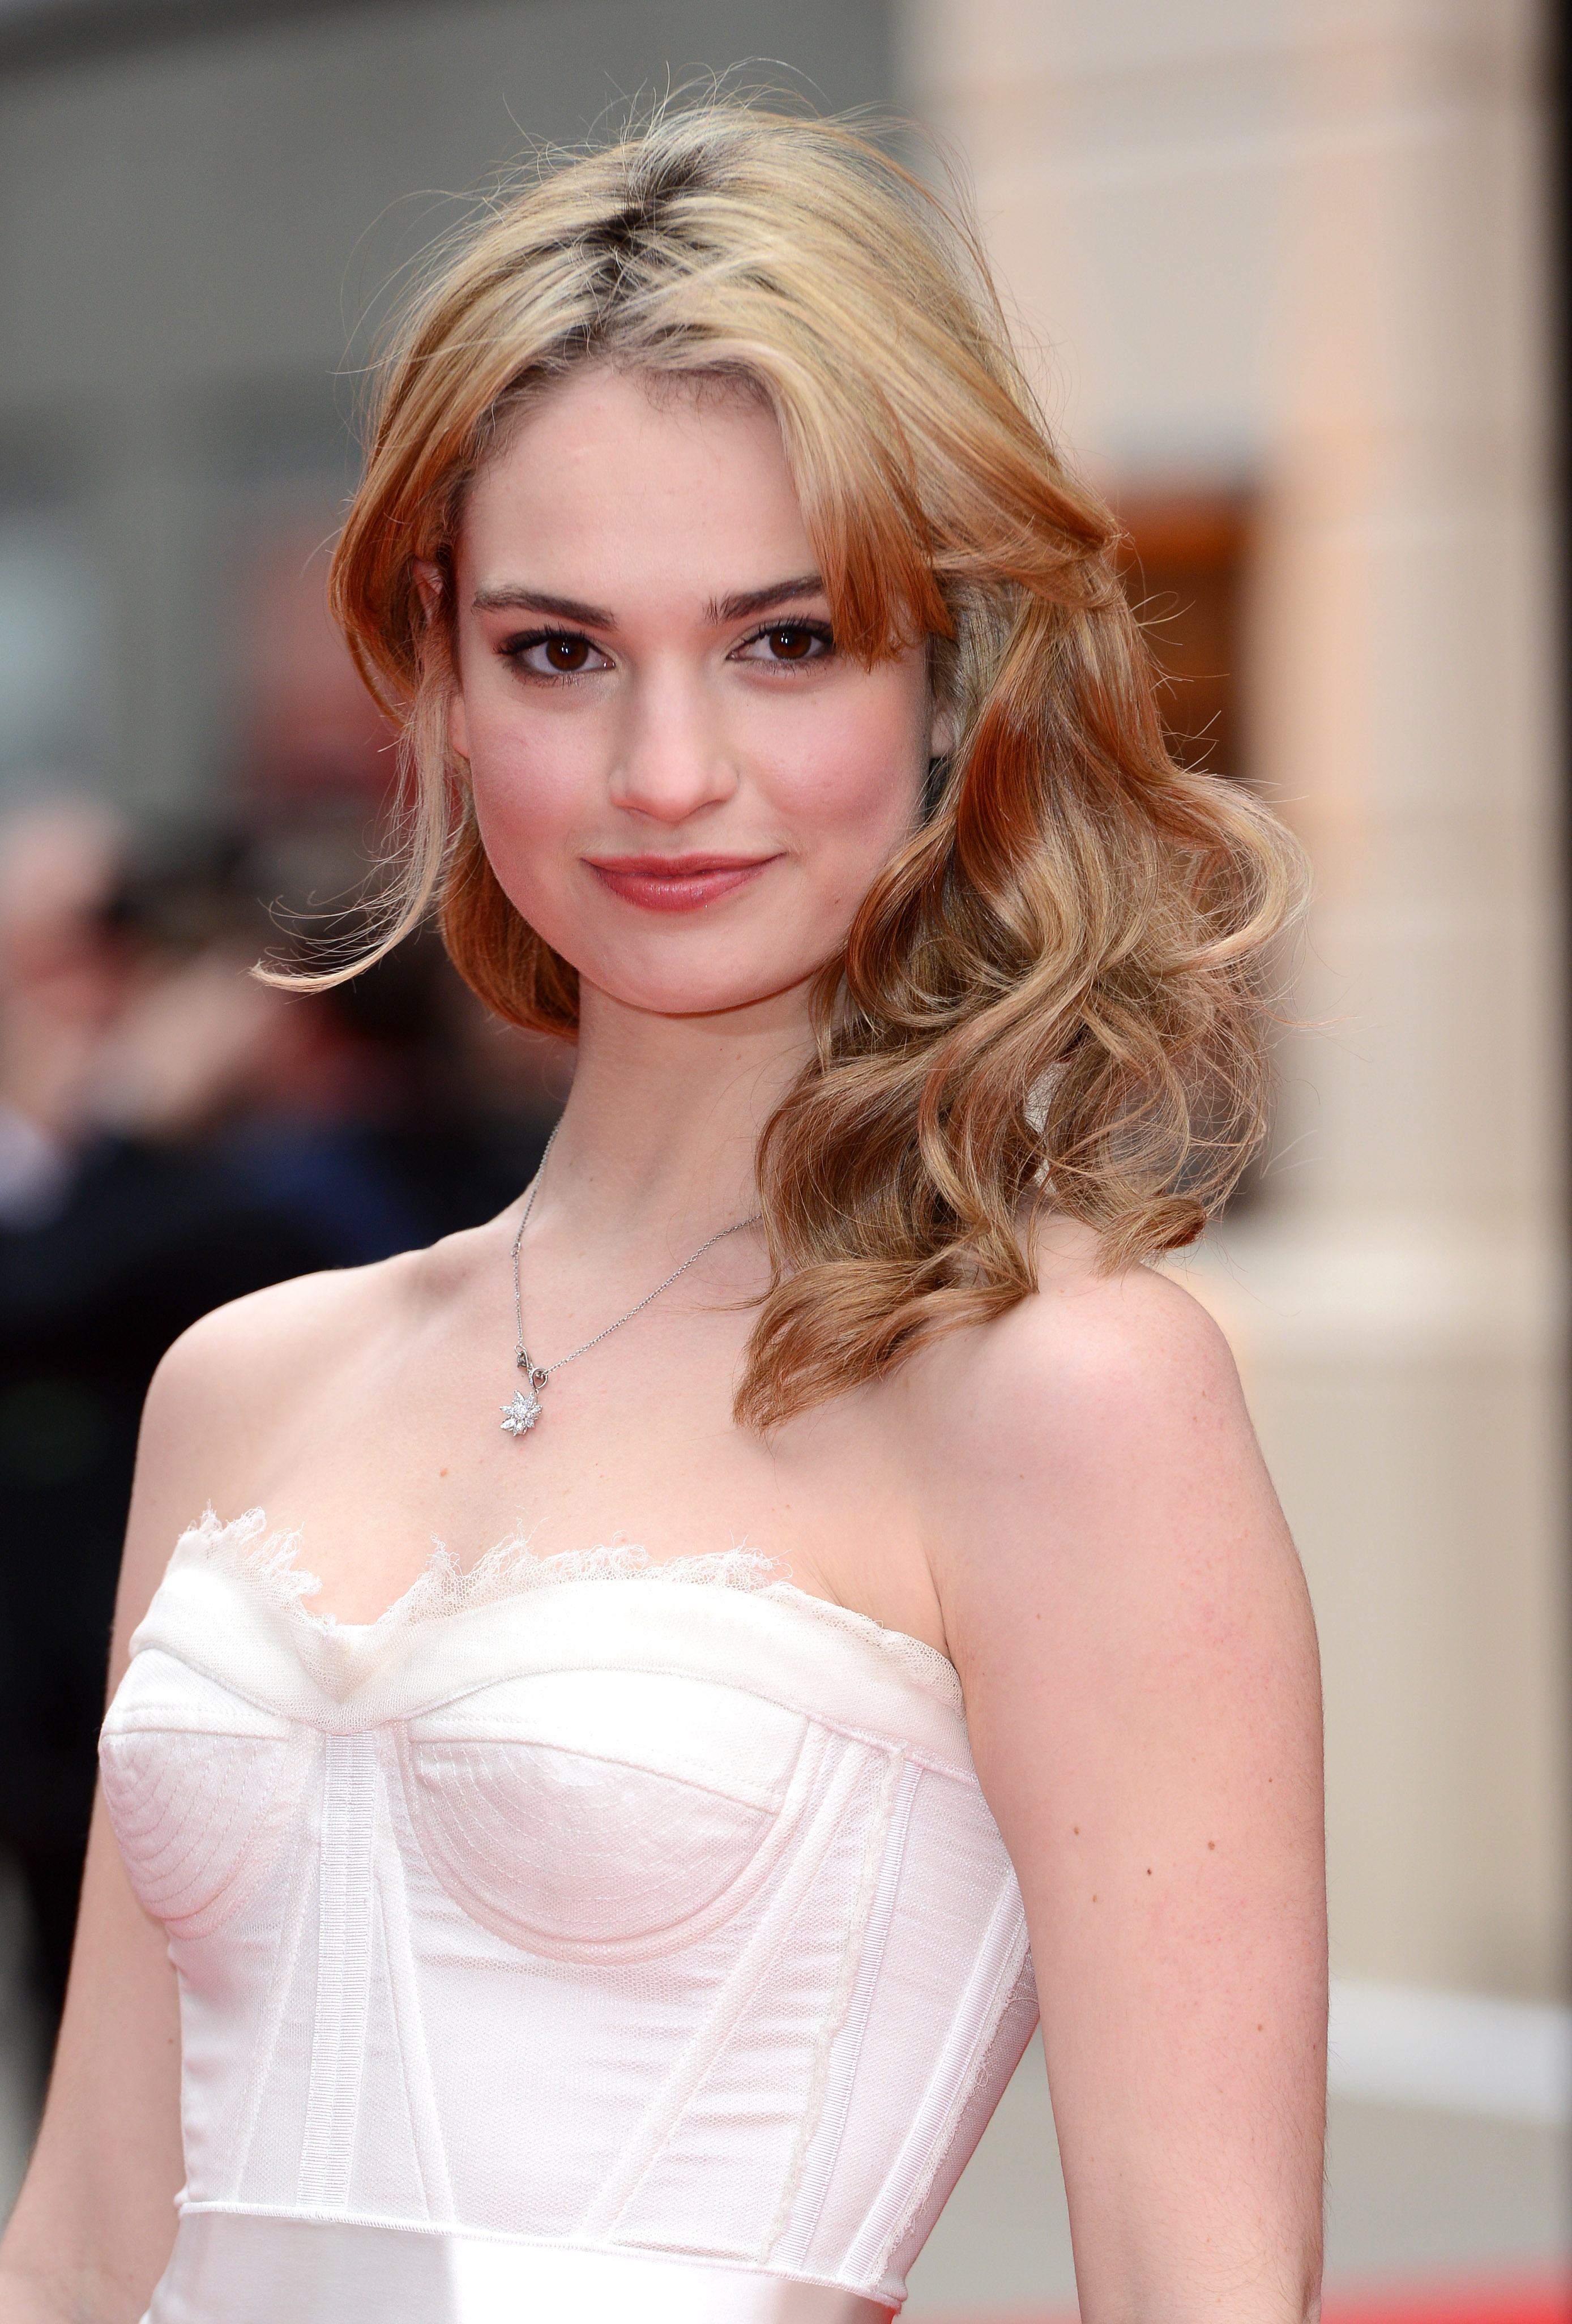 Hacked Lily James nudes (17 photo), Ass, Cleavage, Instagram, bra 2020